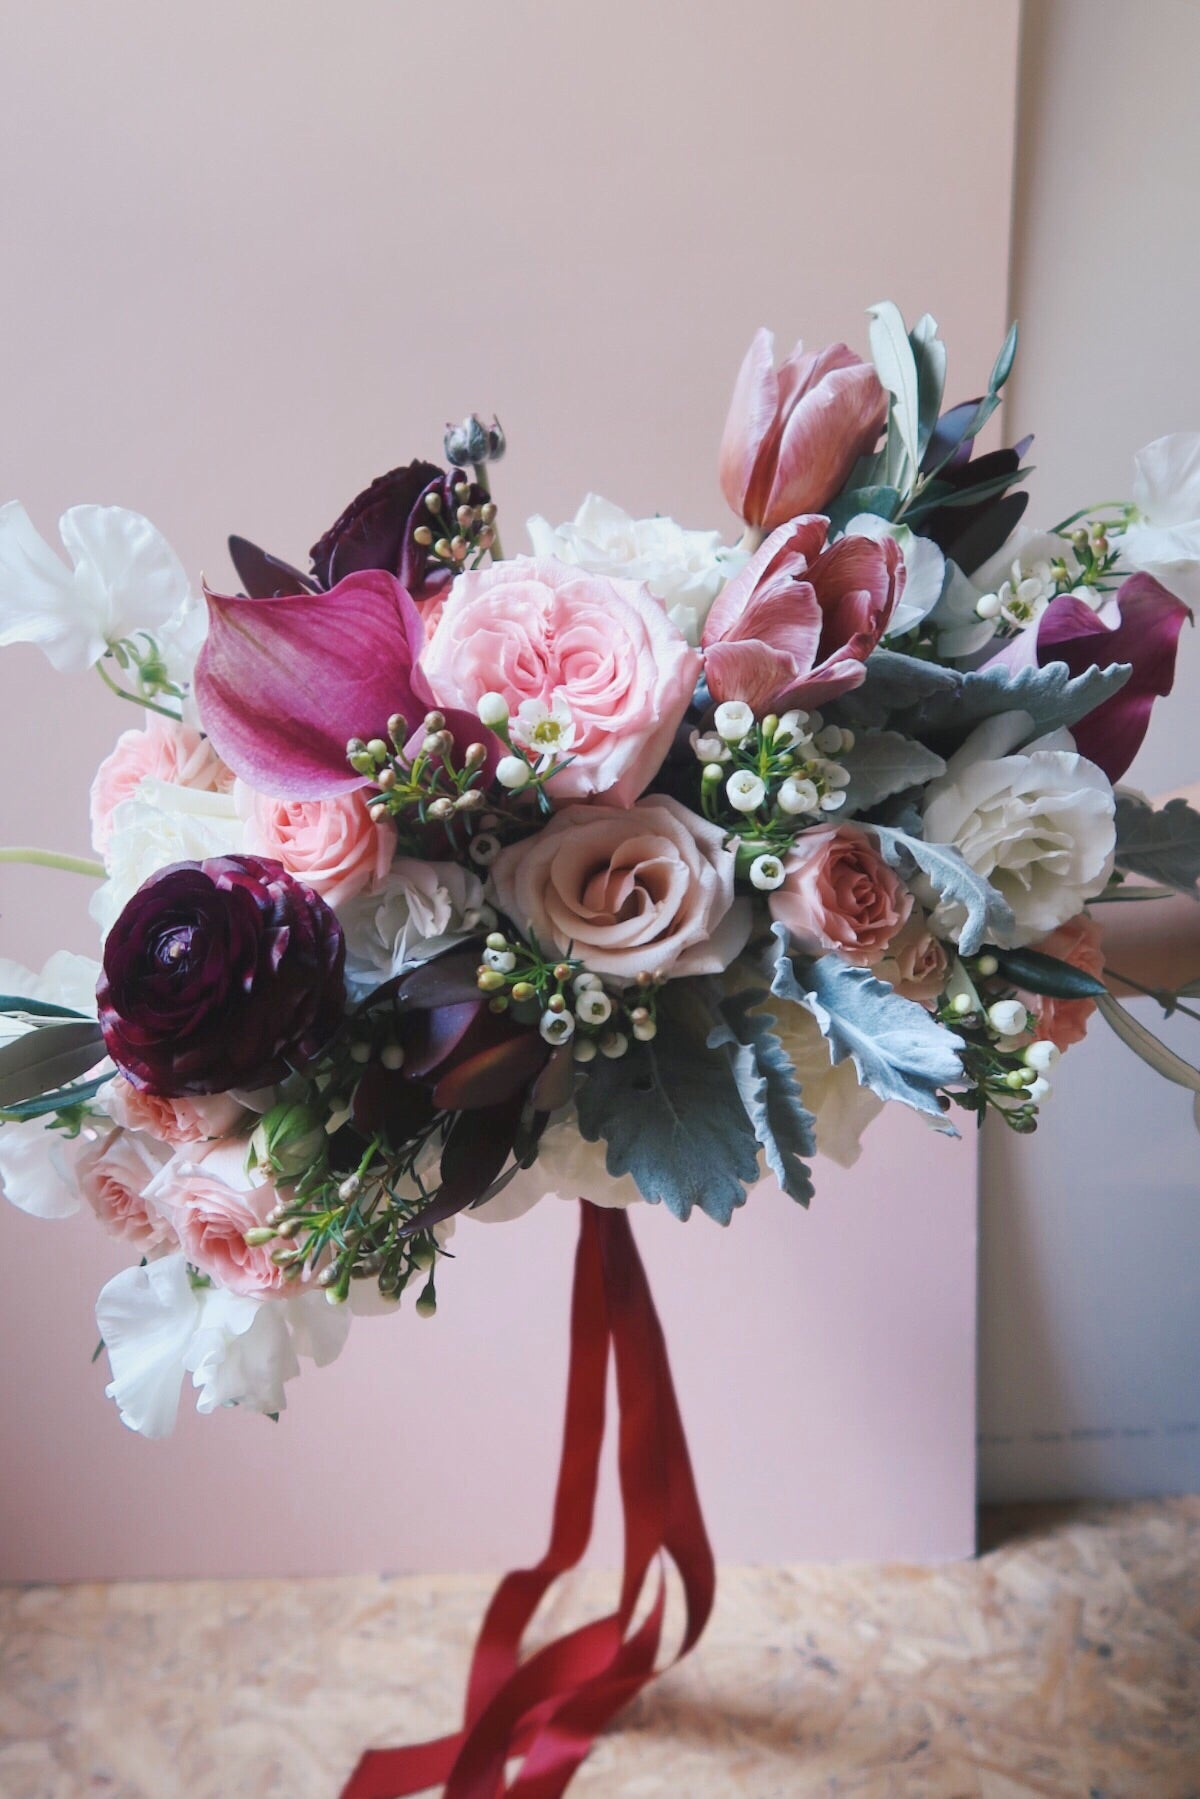 Wedding Floral Design and Arrangement Workshop (Skillsfuture Claimable) - hello flowers!